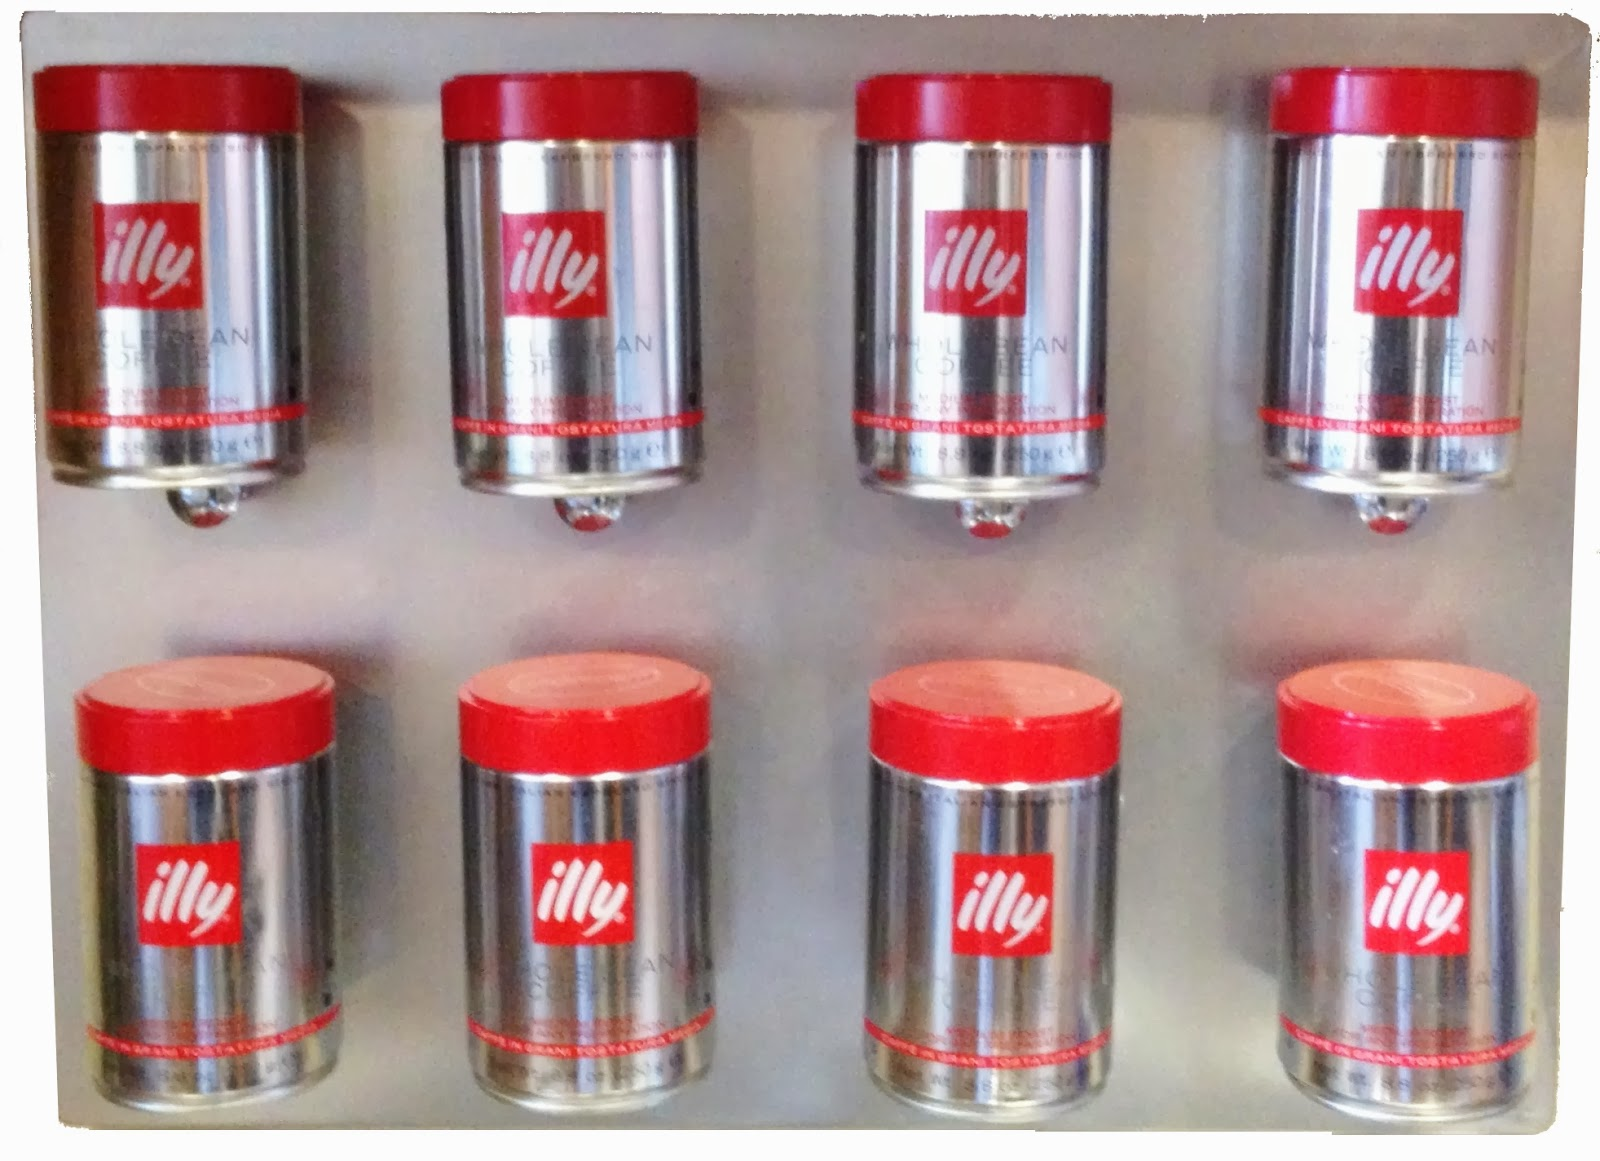 The Barista Illy Coffee Empty Cans Project